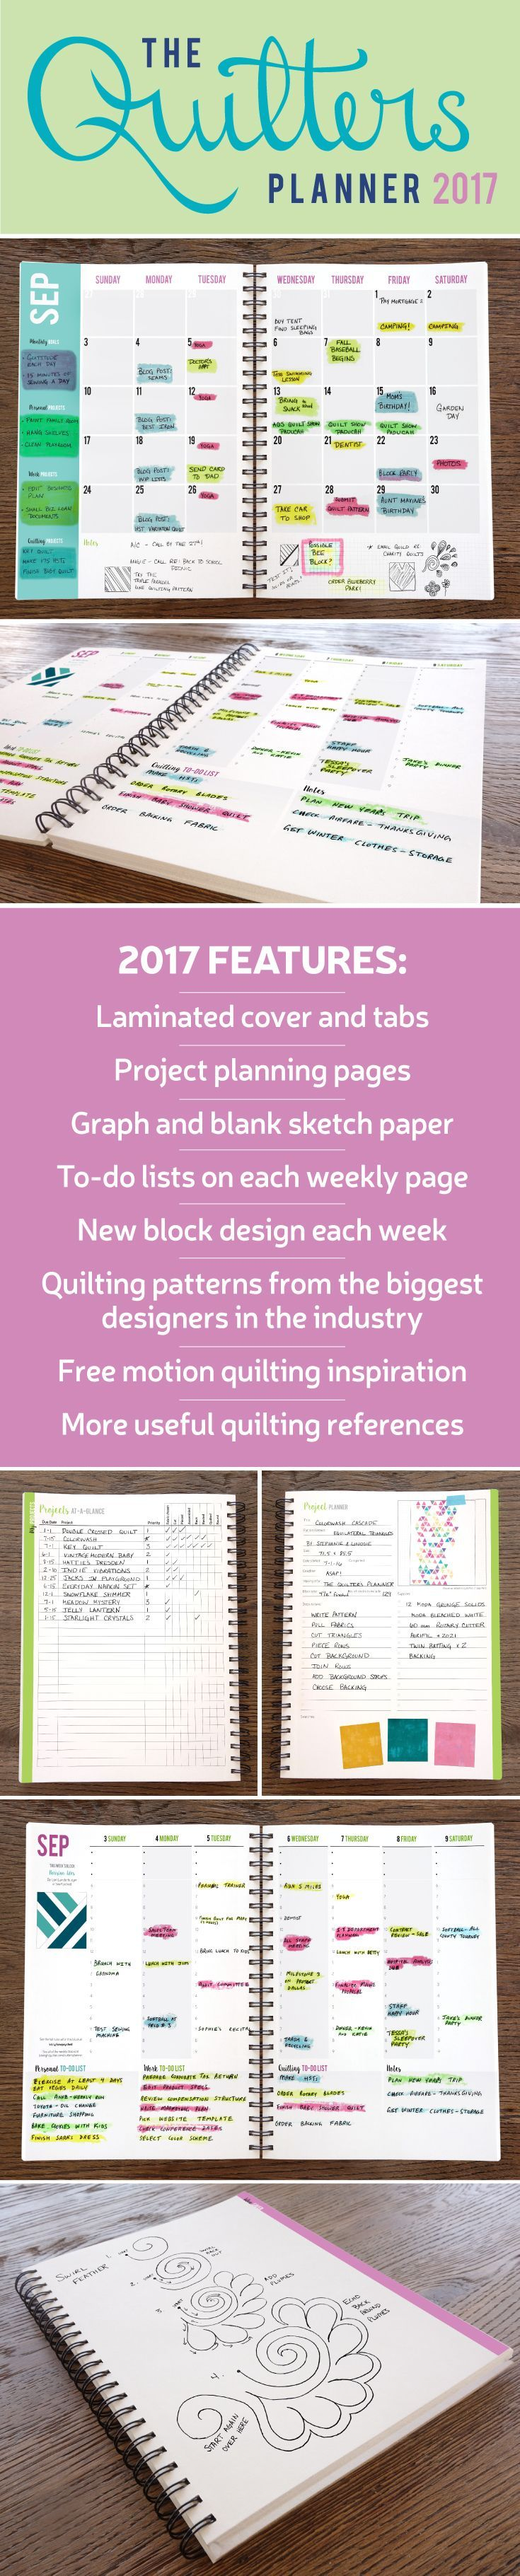 Organizing Quilting Templates : 9 best quilt journals images on Pinterest Quilt labels, Journal template and Quilting projects